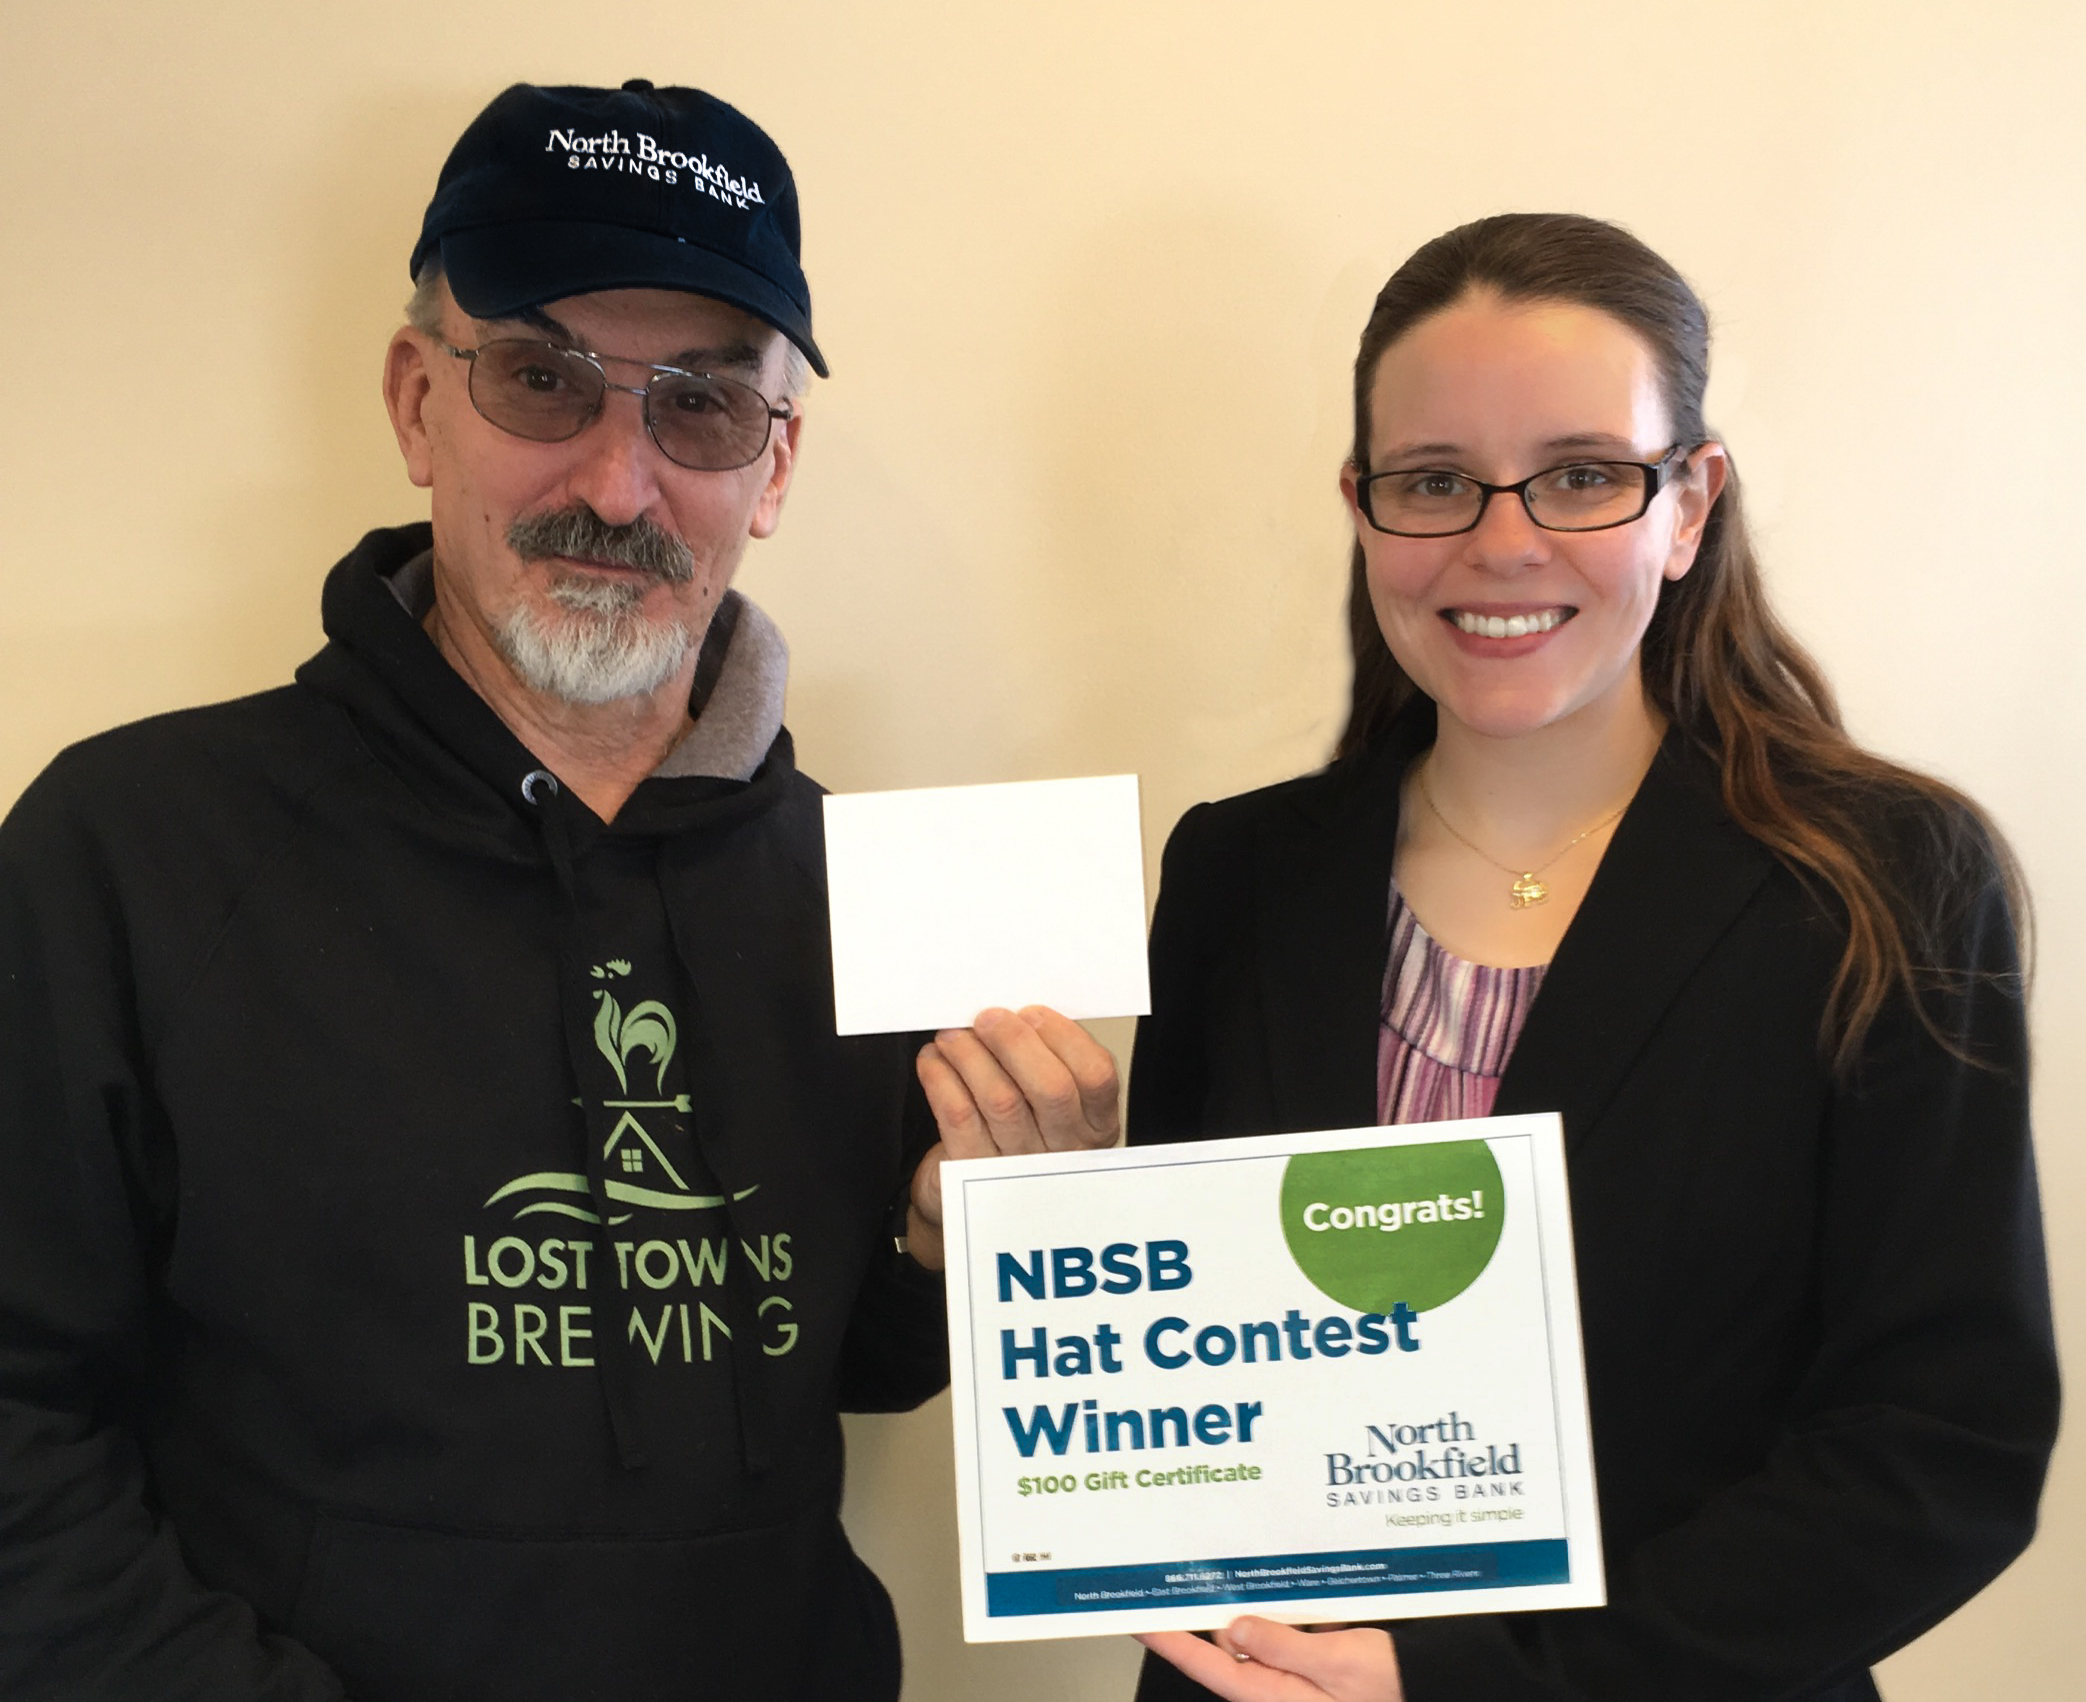 North Brookfield Savings Bank's Ware Supervisor and Marketing Assistant Nicole Syriac presented a $100 Lost Towns Brewing gift certificate to NBSB's January Hat Contest Winner Joseph Siok.